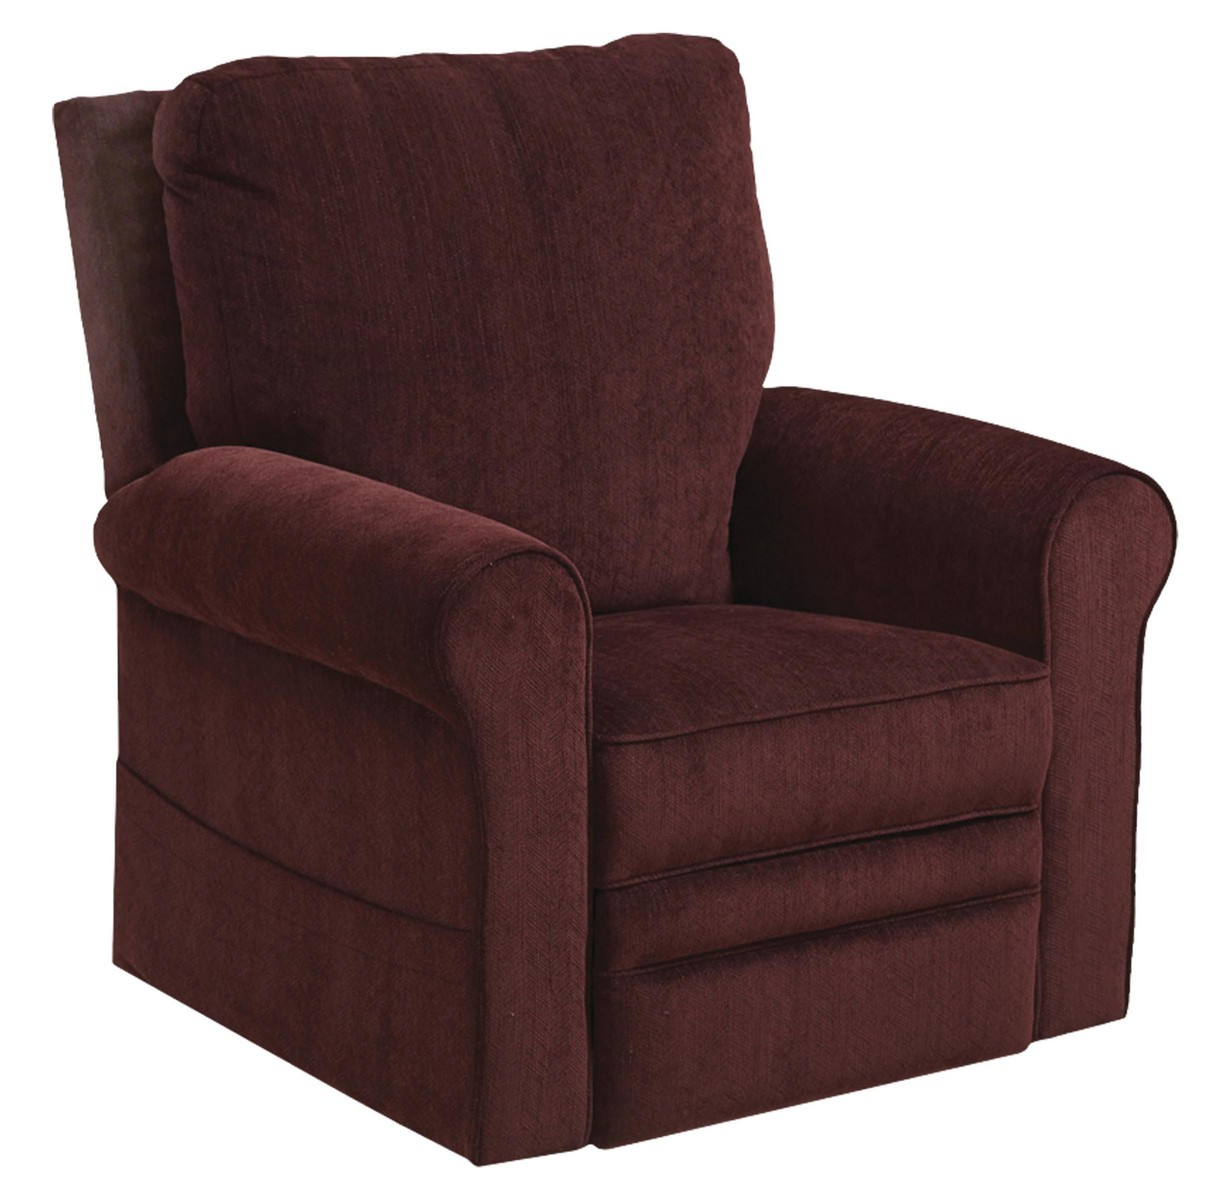 Catnapper Chair Catnapper Edwards Power Lift Recliner Plum Cn 4851 Plum